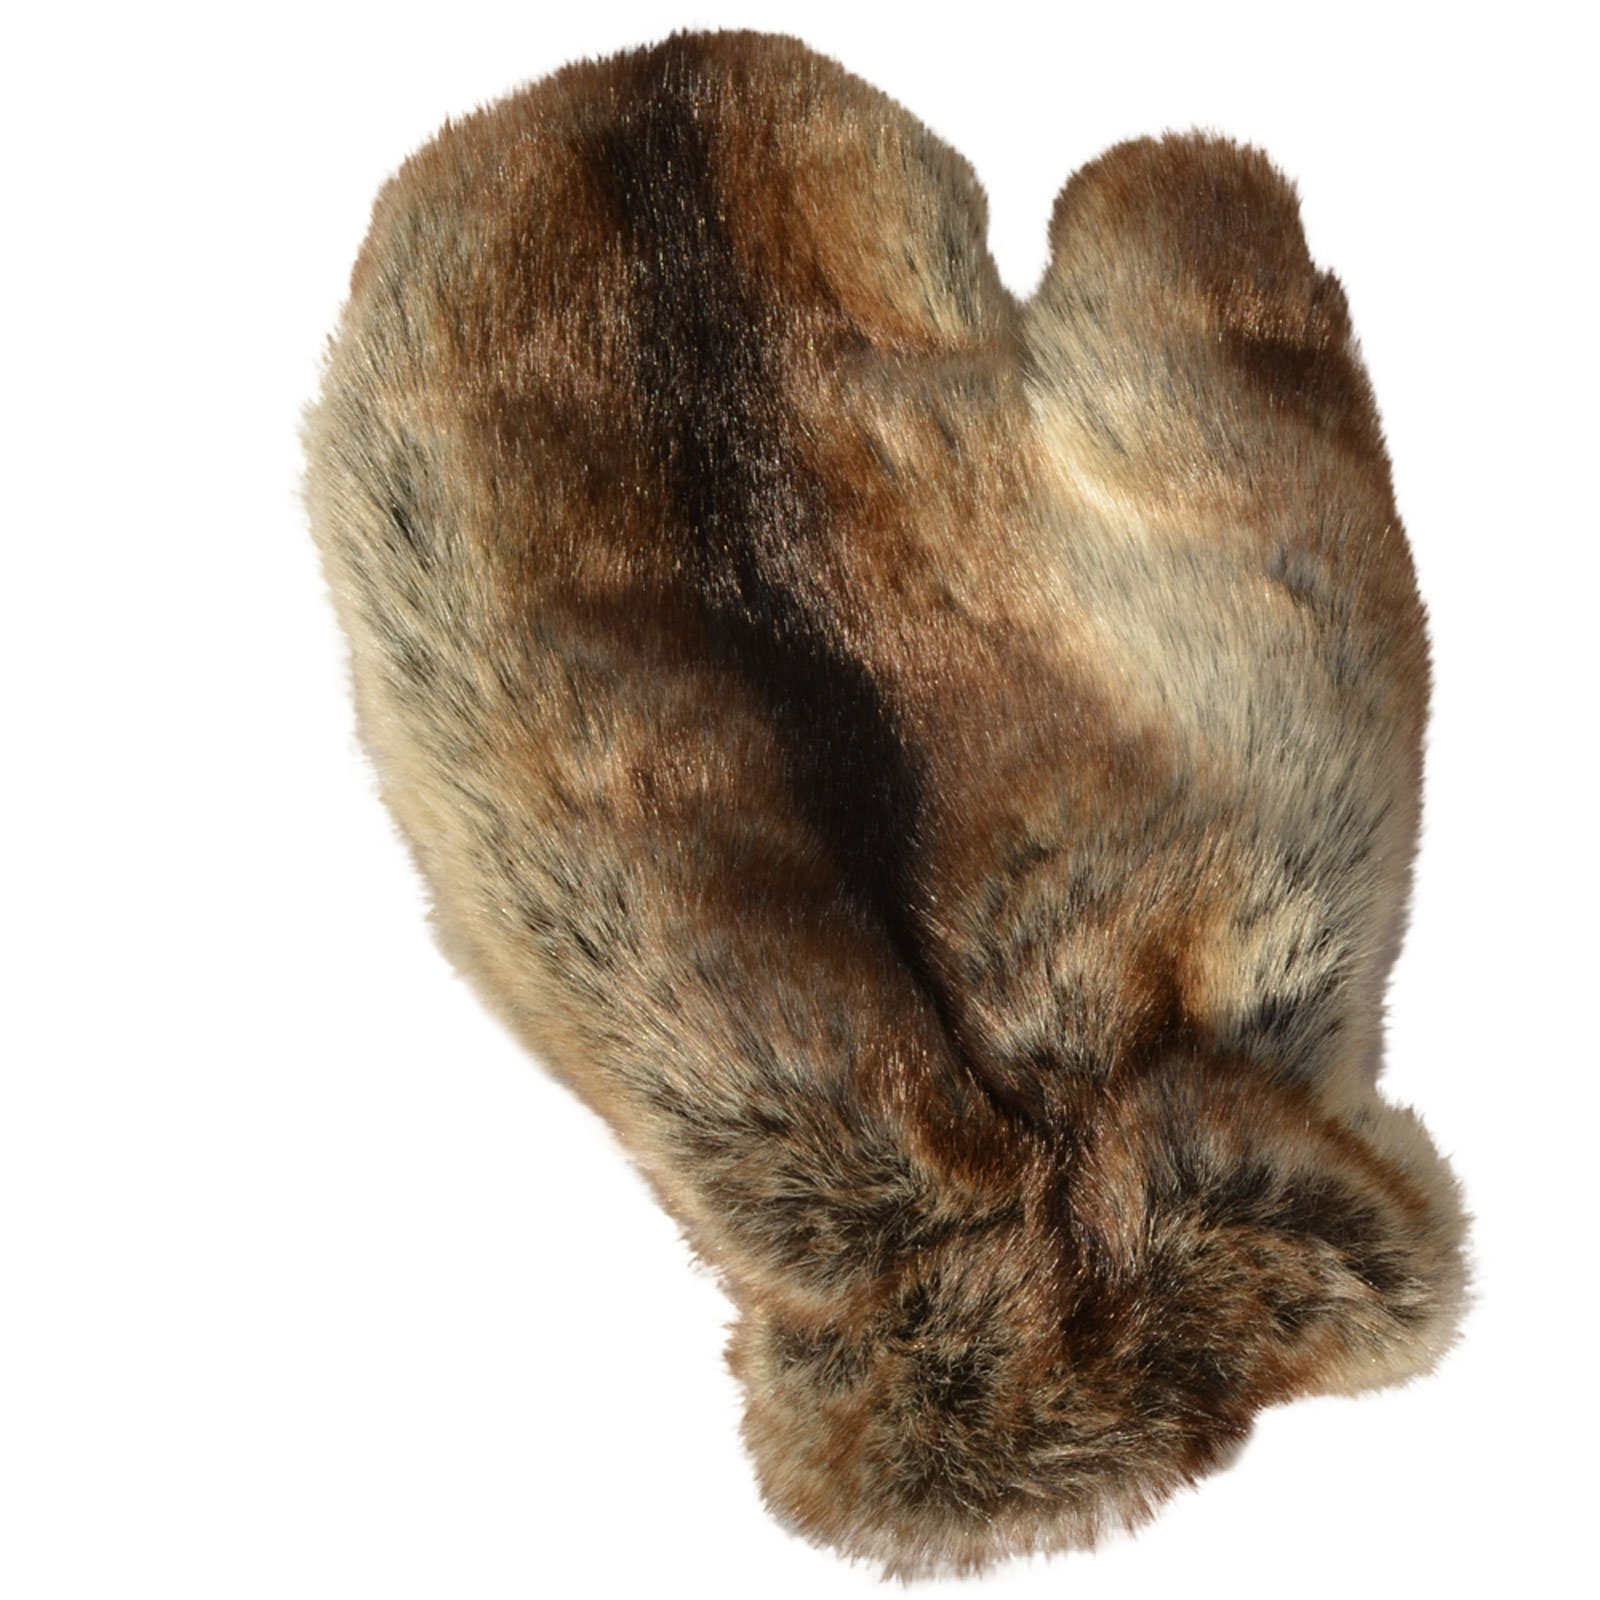 MinkgLove Fake Rex Rabbit Massage Glove, Plush Airy Velvety Soft Feeling, Chinchilla Brown Color, Unisex, Hand Tailored, One Size - Double Sided Faux Fake Fur